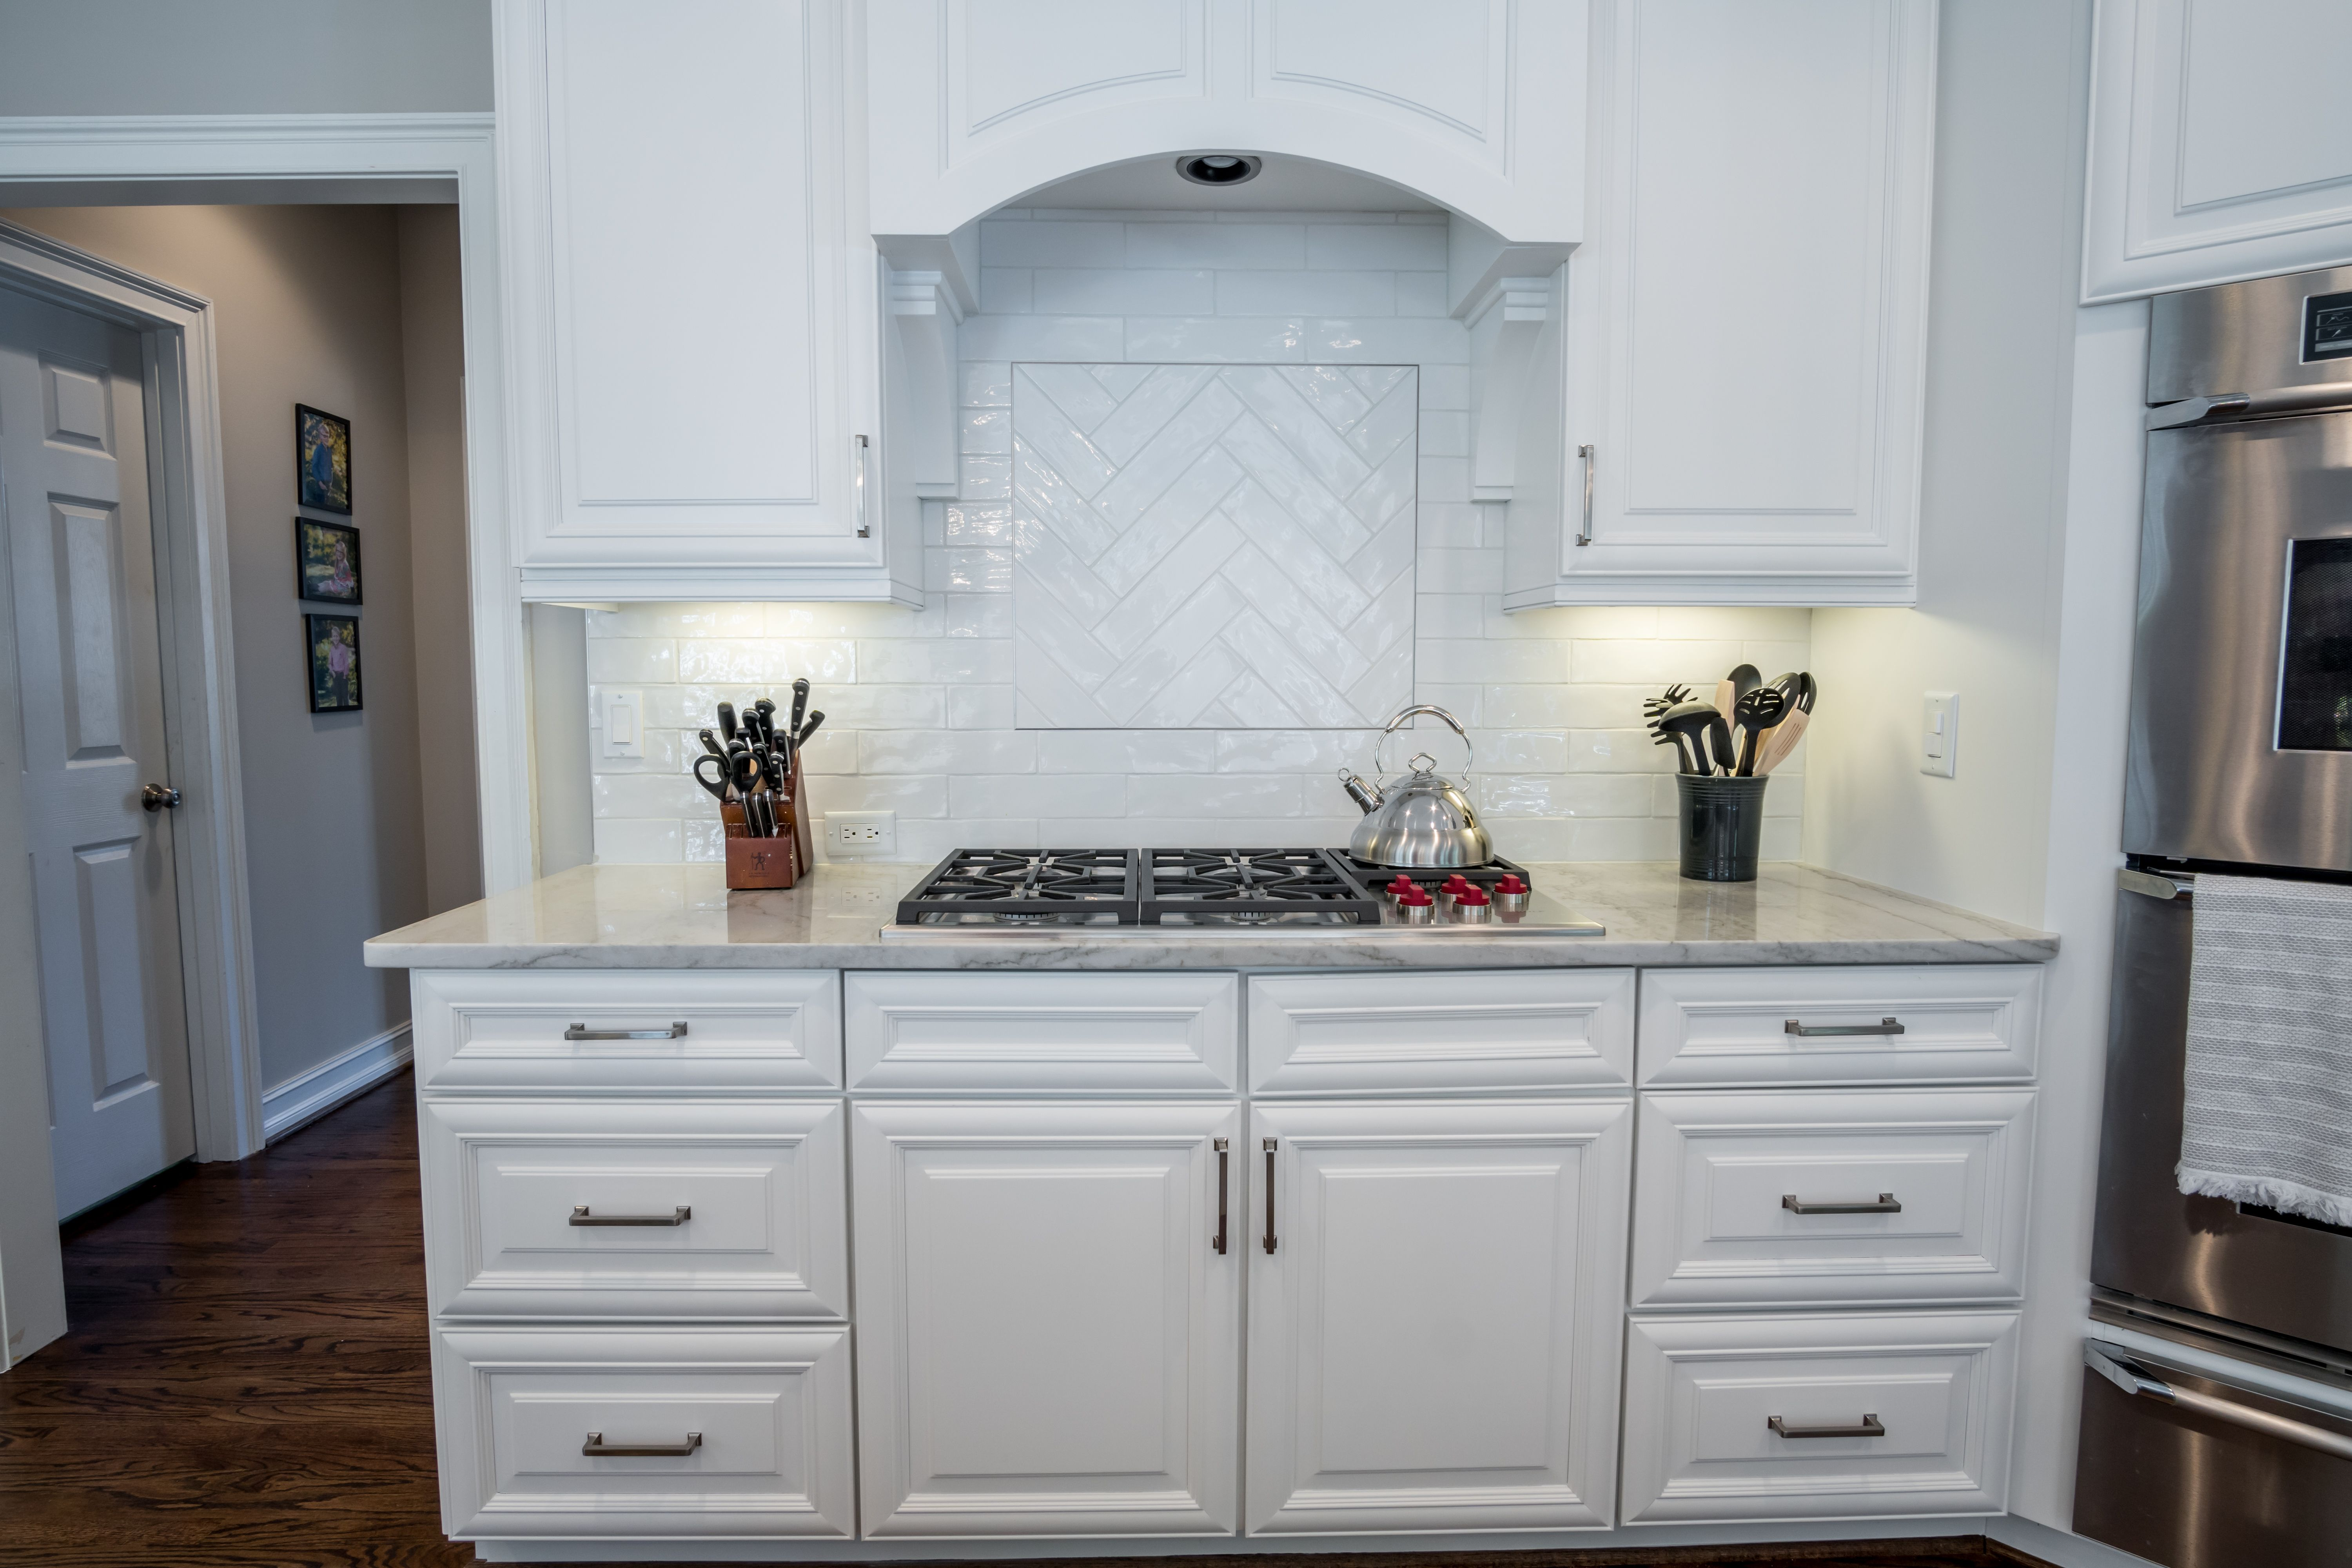 Herringbone Tile Schluter Strip And White Cabinets Cooktop Hood Corbels Kitchen Design Kitchen Stove Herringbone Tile